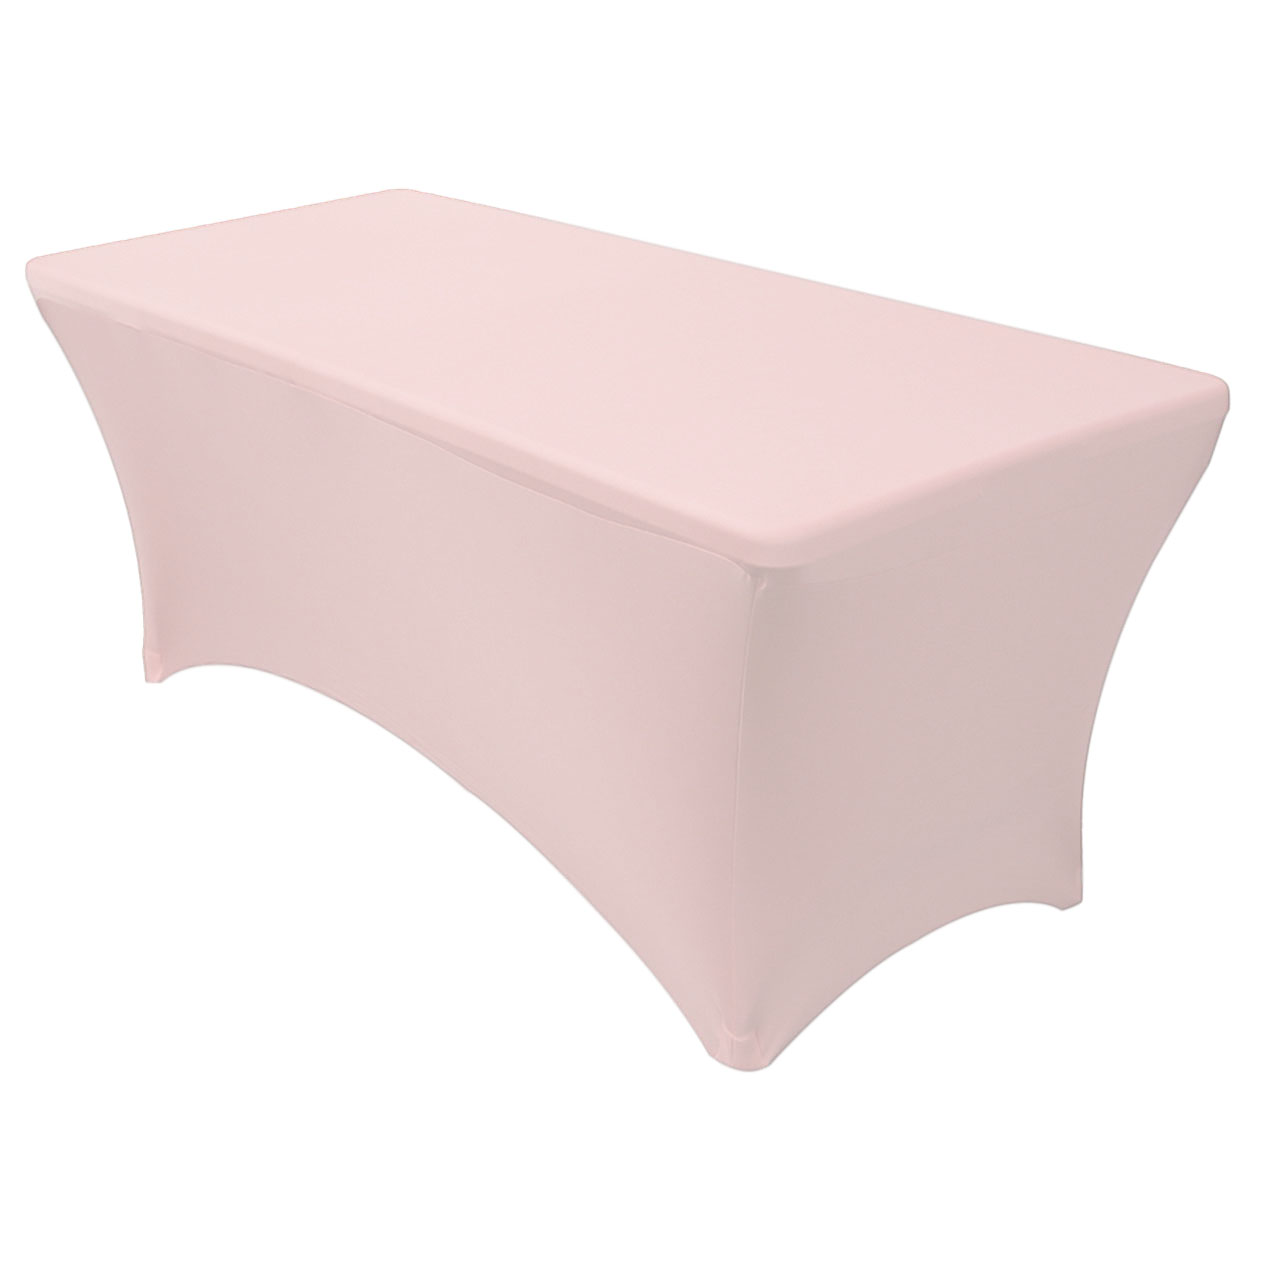 Your Chair Covers Stretch Spandex 6 Ft Rectangular Table Cover Blush For Wedding Party Birthday Patio Etc Walmart Com